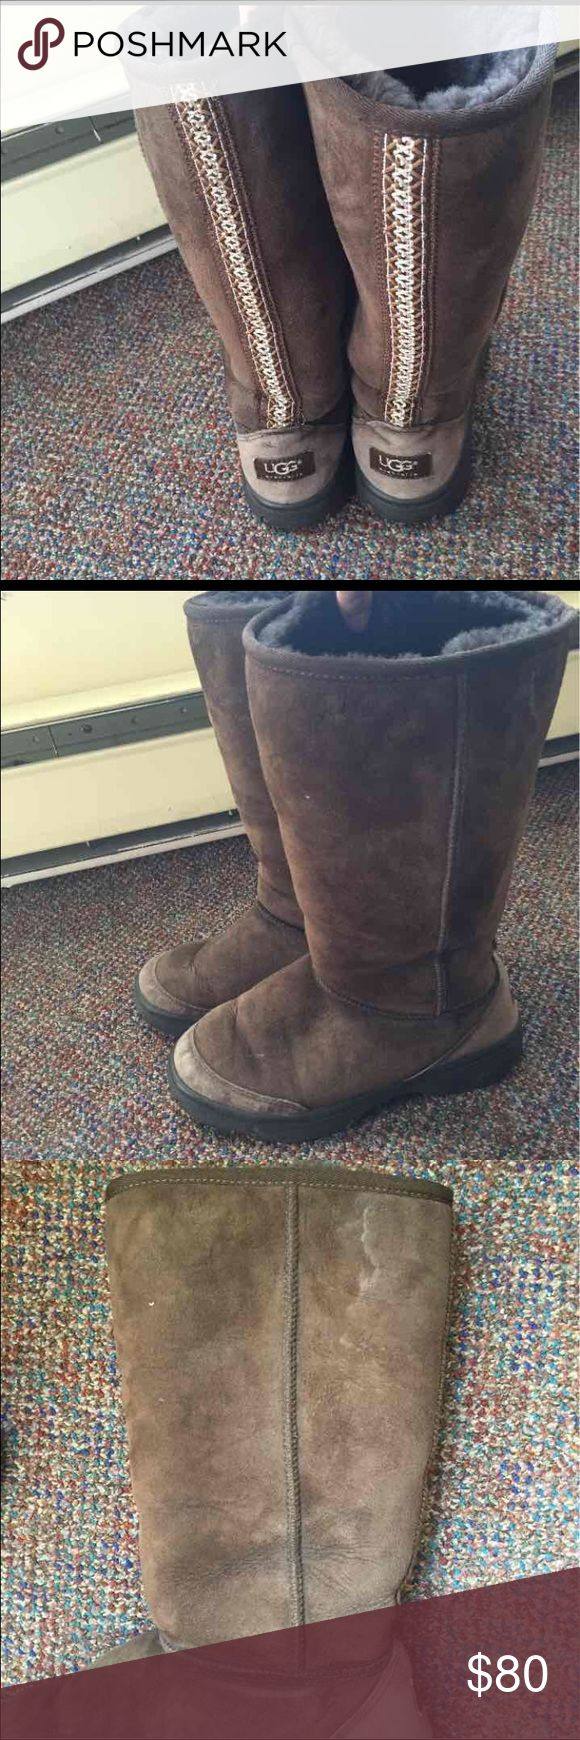 Ugg boots Size 7. Rubber sole.  Tribal design up the back of boot.  Still in good condition. Have some salt stains. Could easily be cleaned. UGG Shoes Winter & Rain Boots